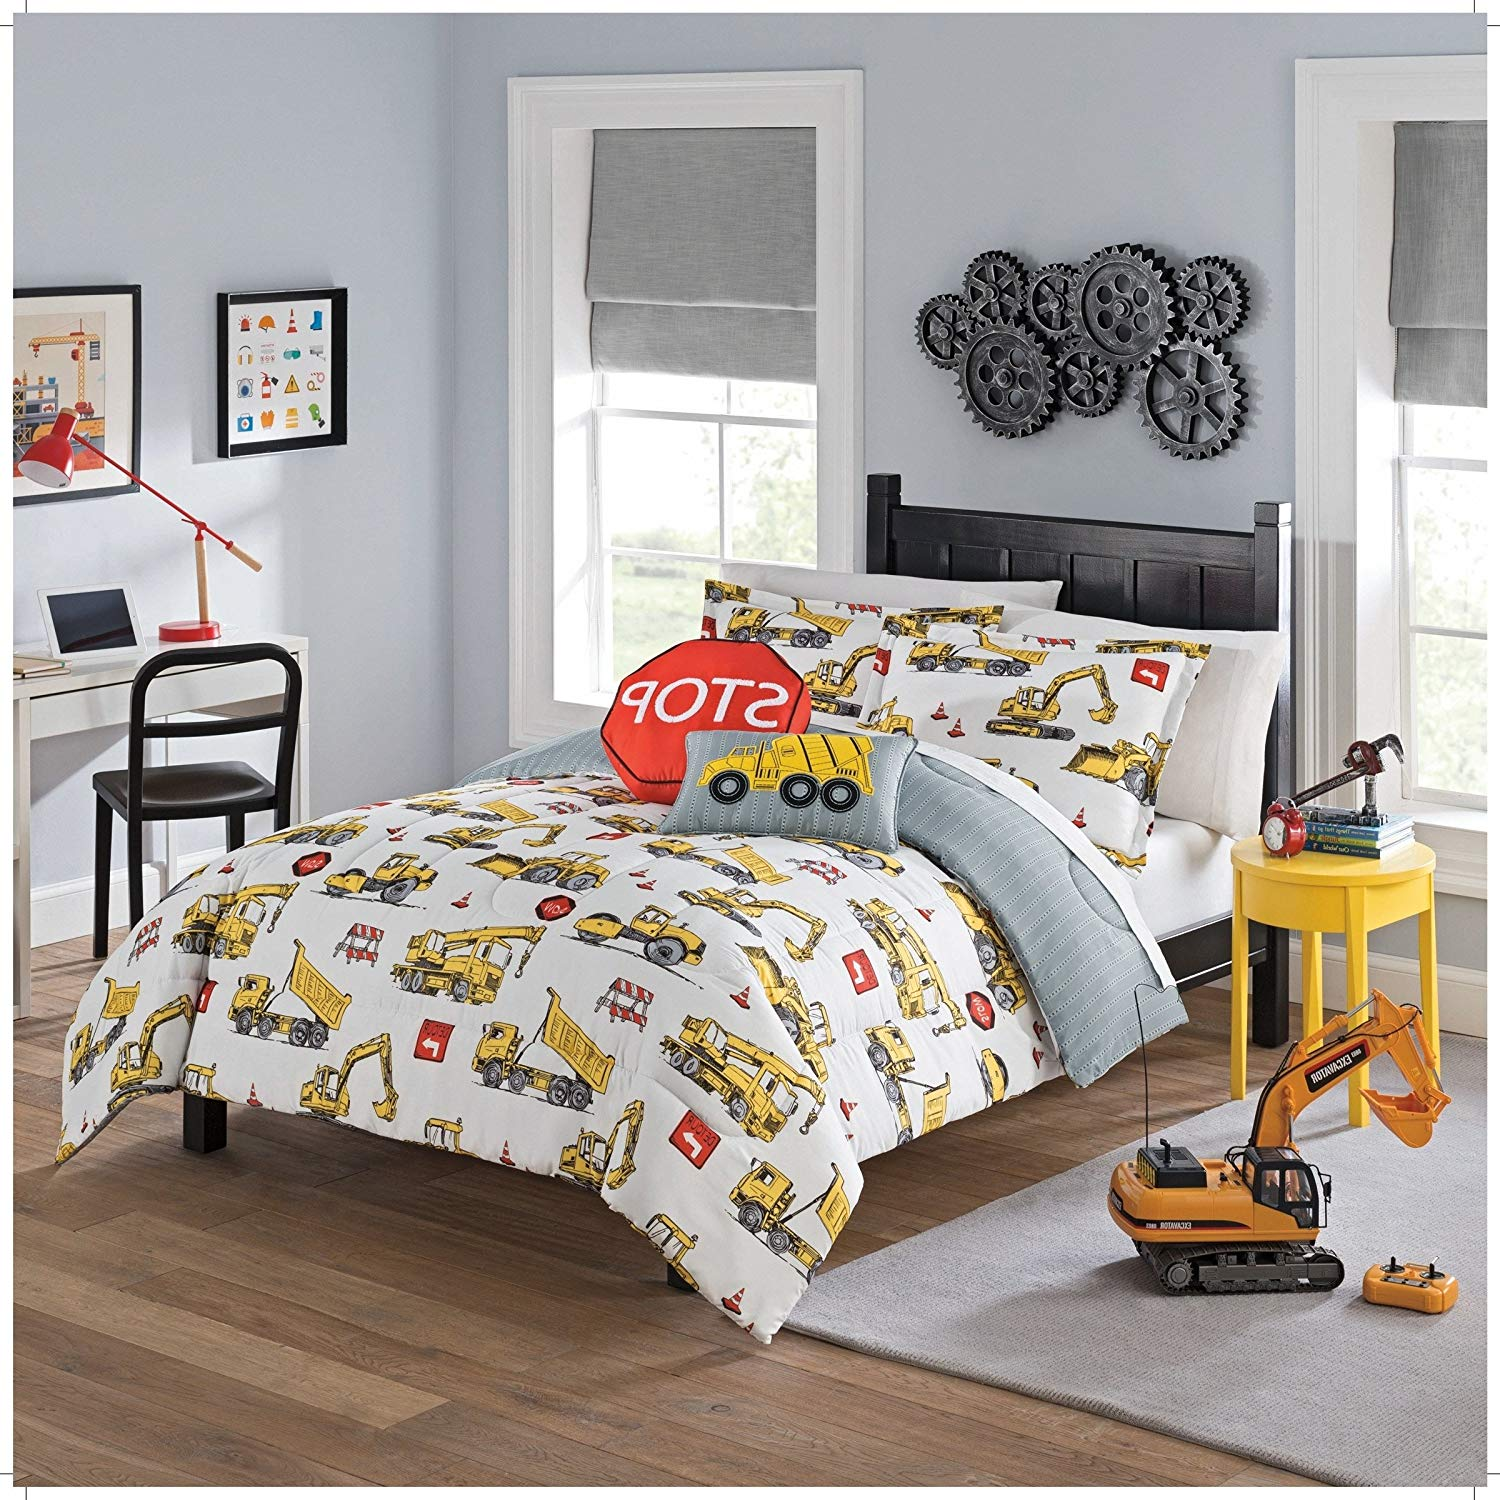 MI 3 Piece Kids Construction Site Comforter Set Full Sized, Boys Yellow Dump Truck Crane Red Stop Sign Themed Bedding, Caution Detour Bulldozer Theme, Reversible Grey White Stripe Pattern, Polyester